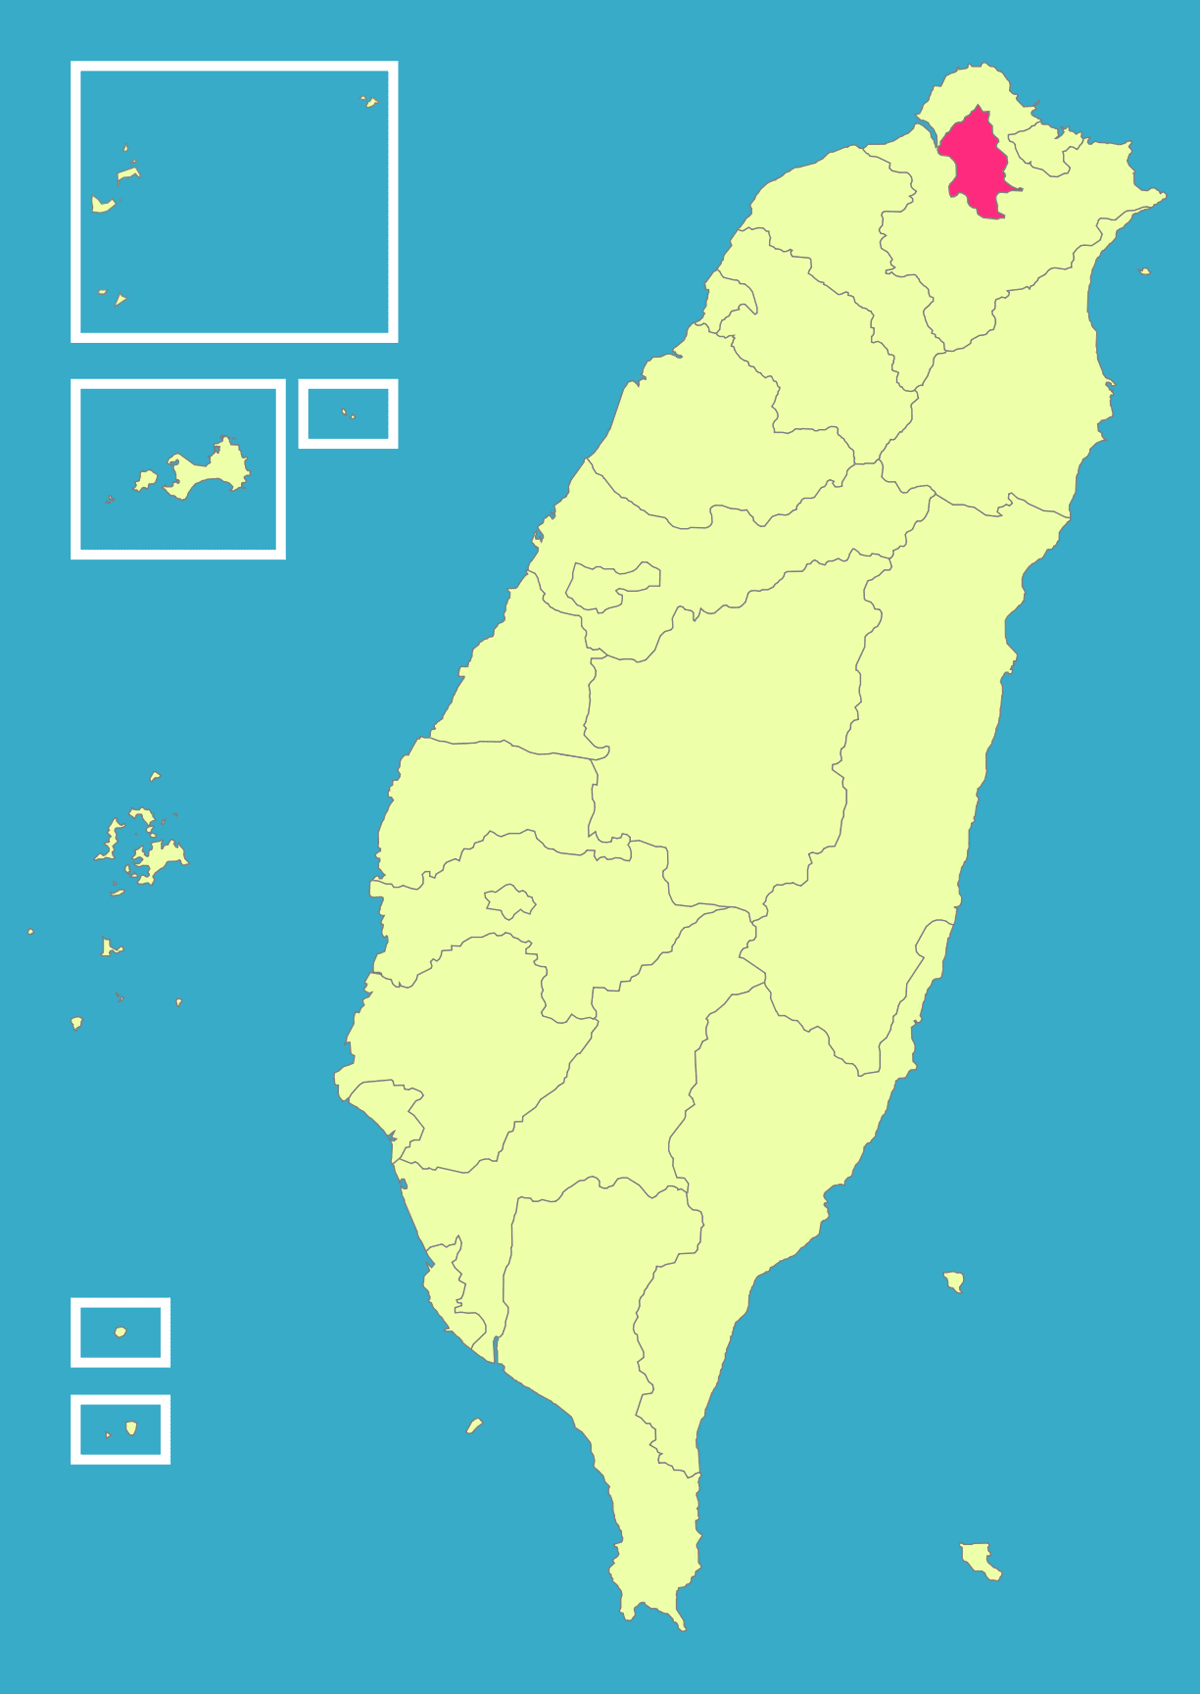 Taipei Taiwan Map Taiwan Roc Political Division Map Taipei City • Mapsof.net